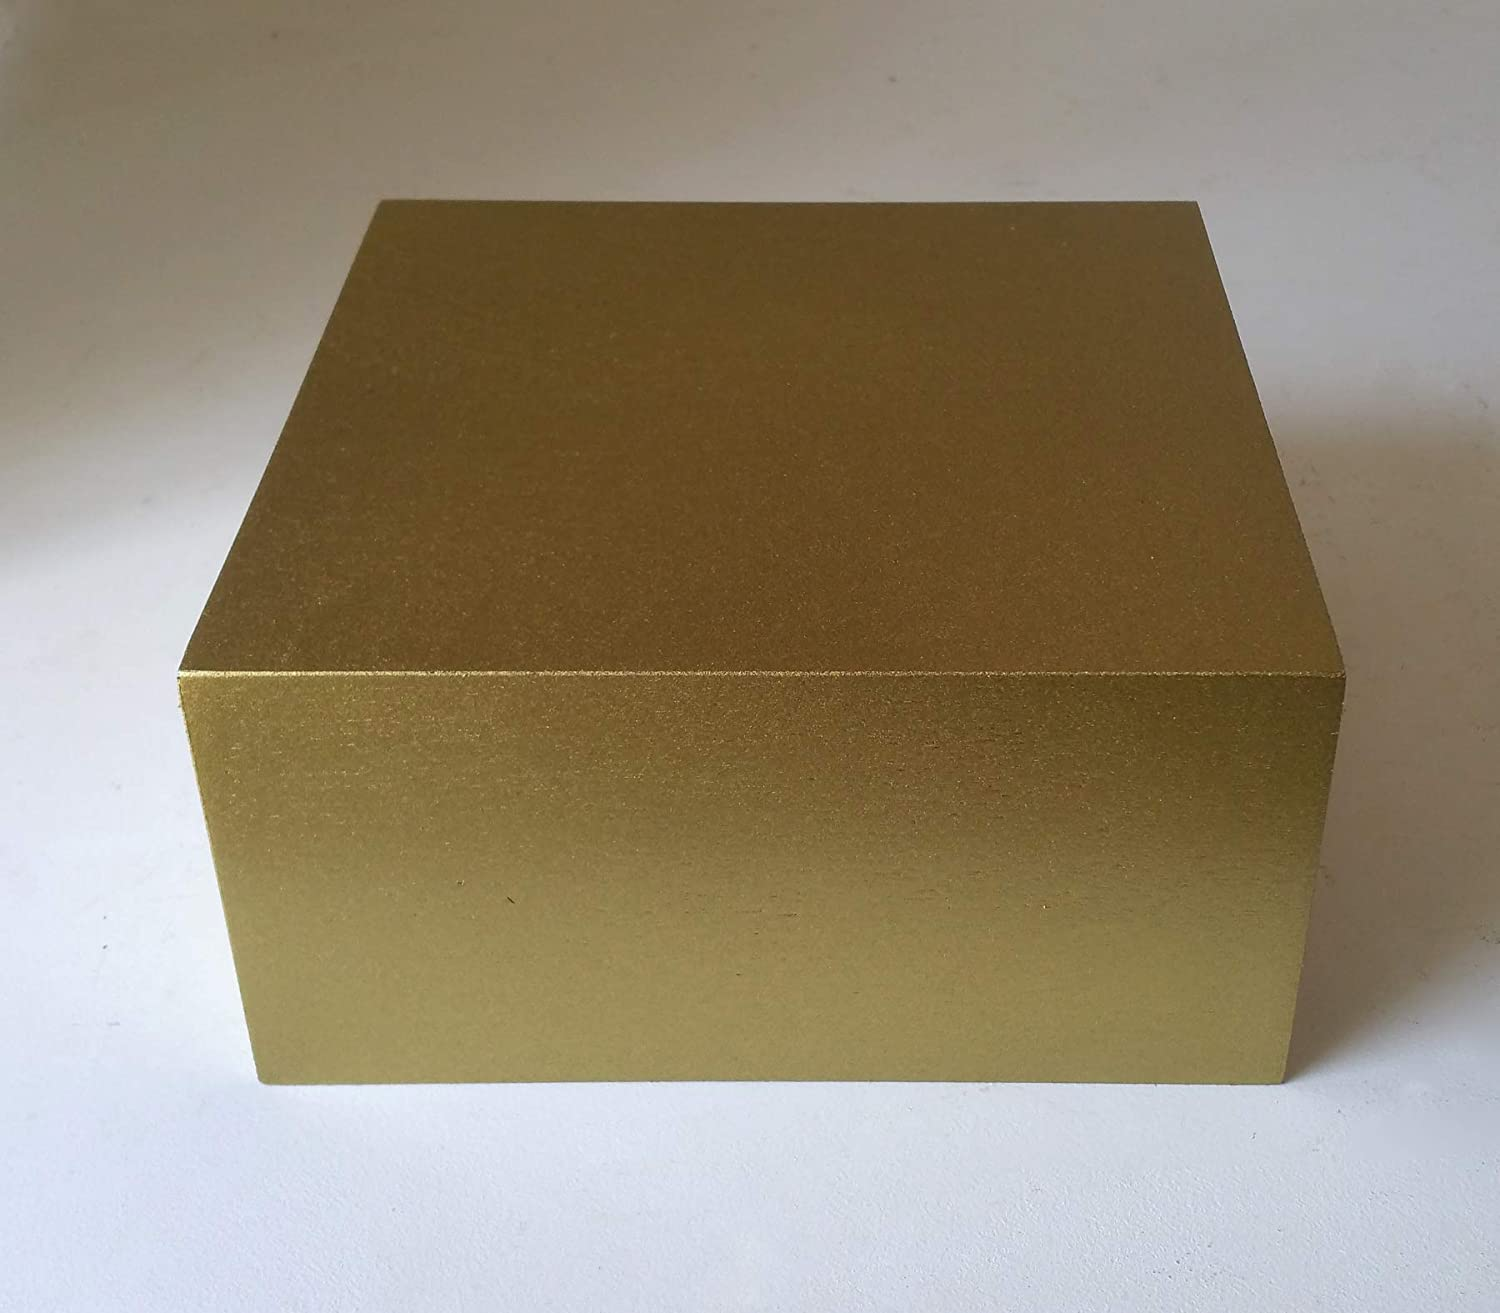 Gold Display Riser 10 x 10 x 5